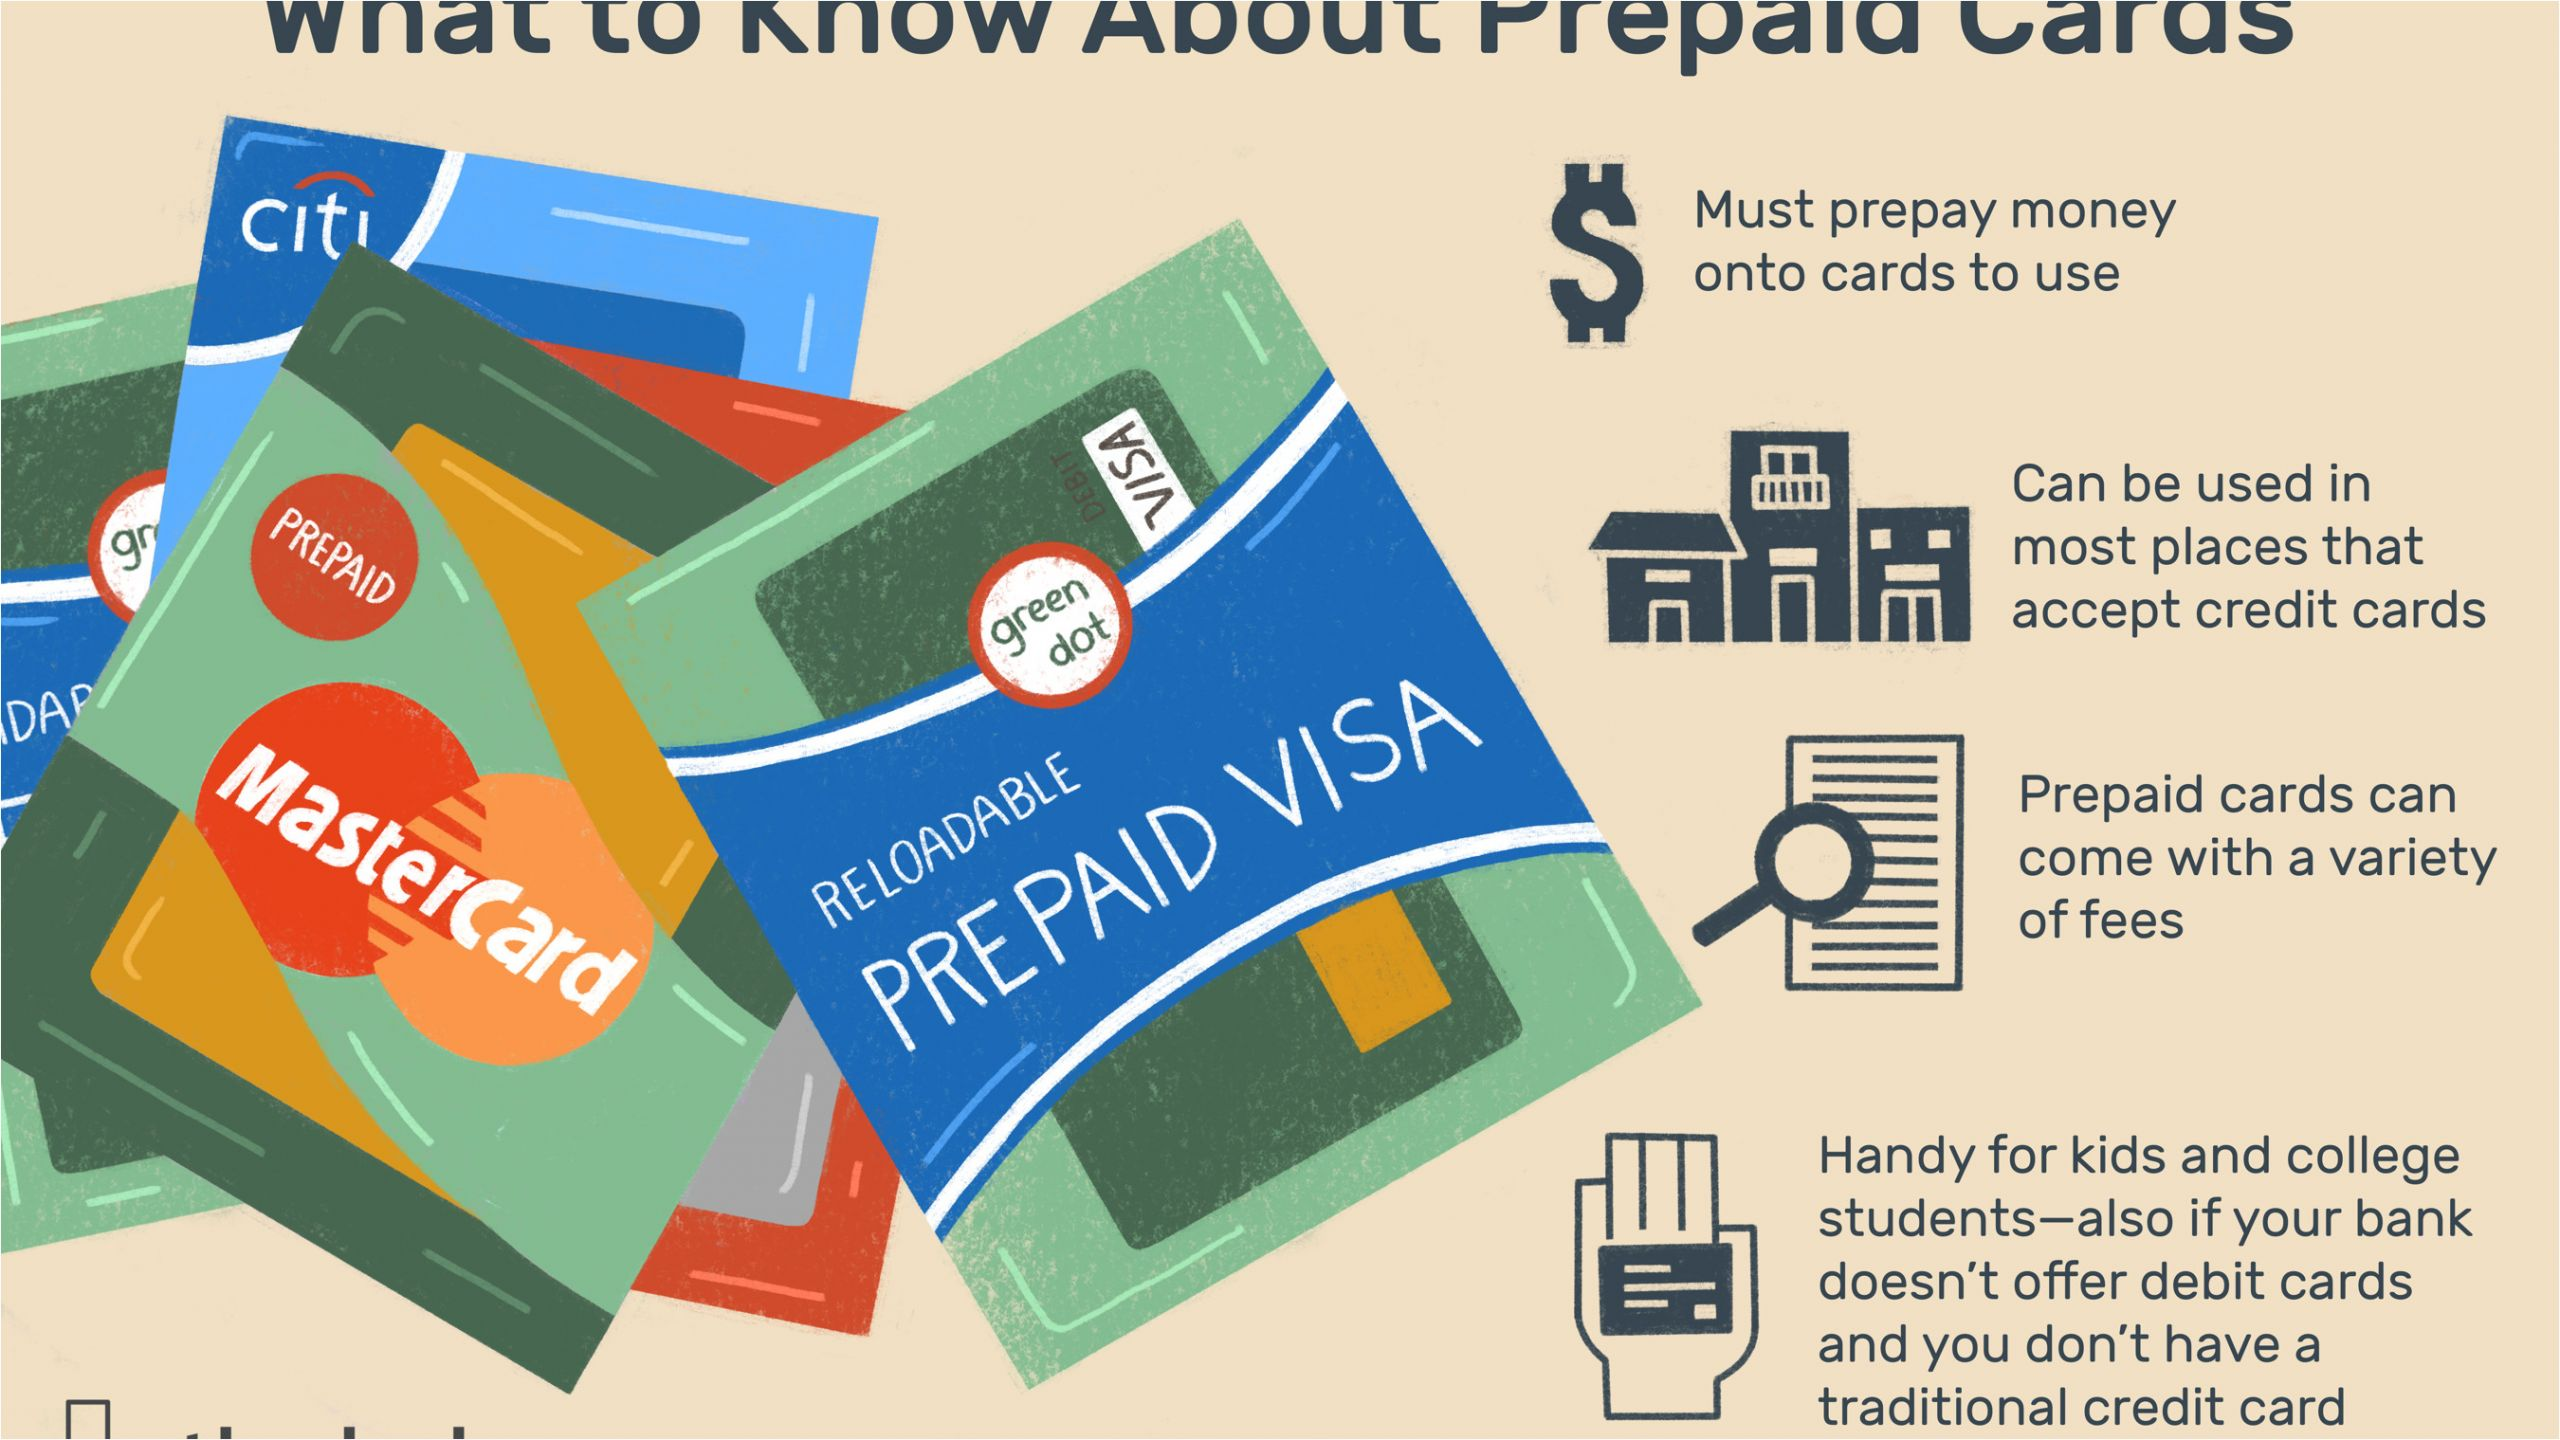 how does a prepaid card work 960201 final2 a914cdbc7901430d80de45153461af0a png